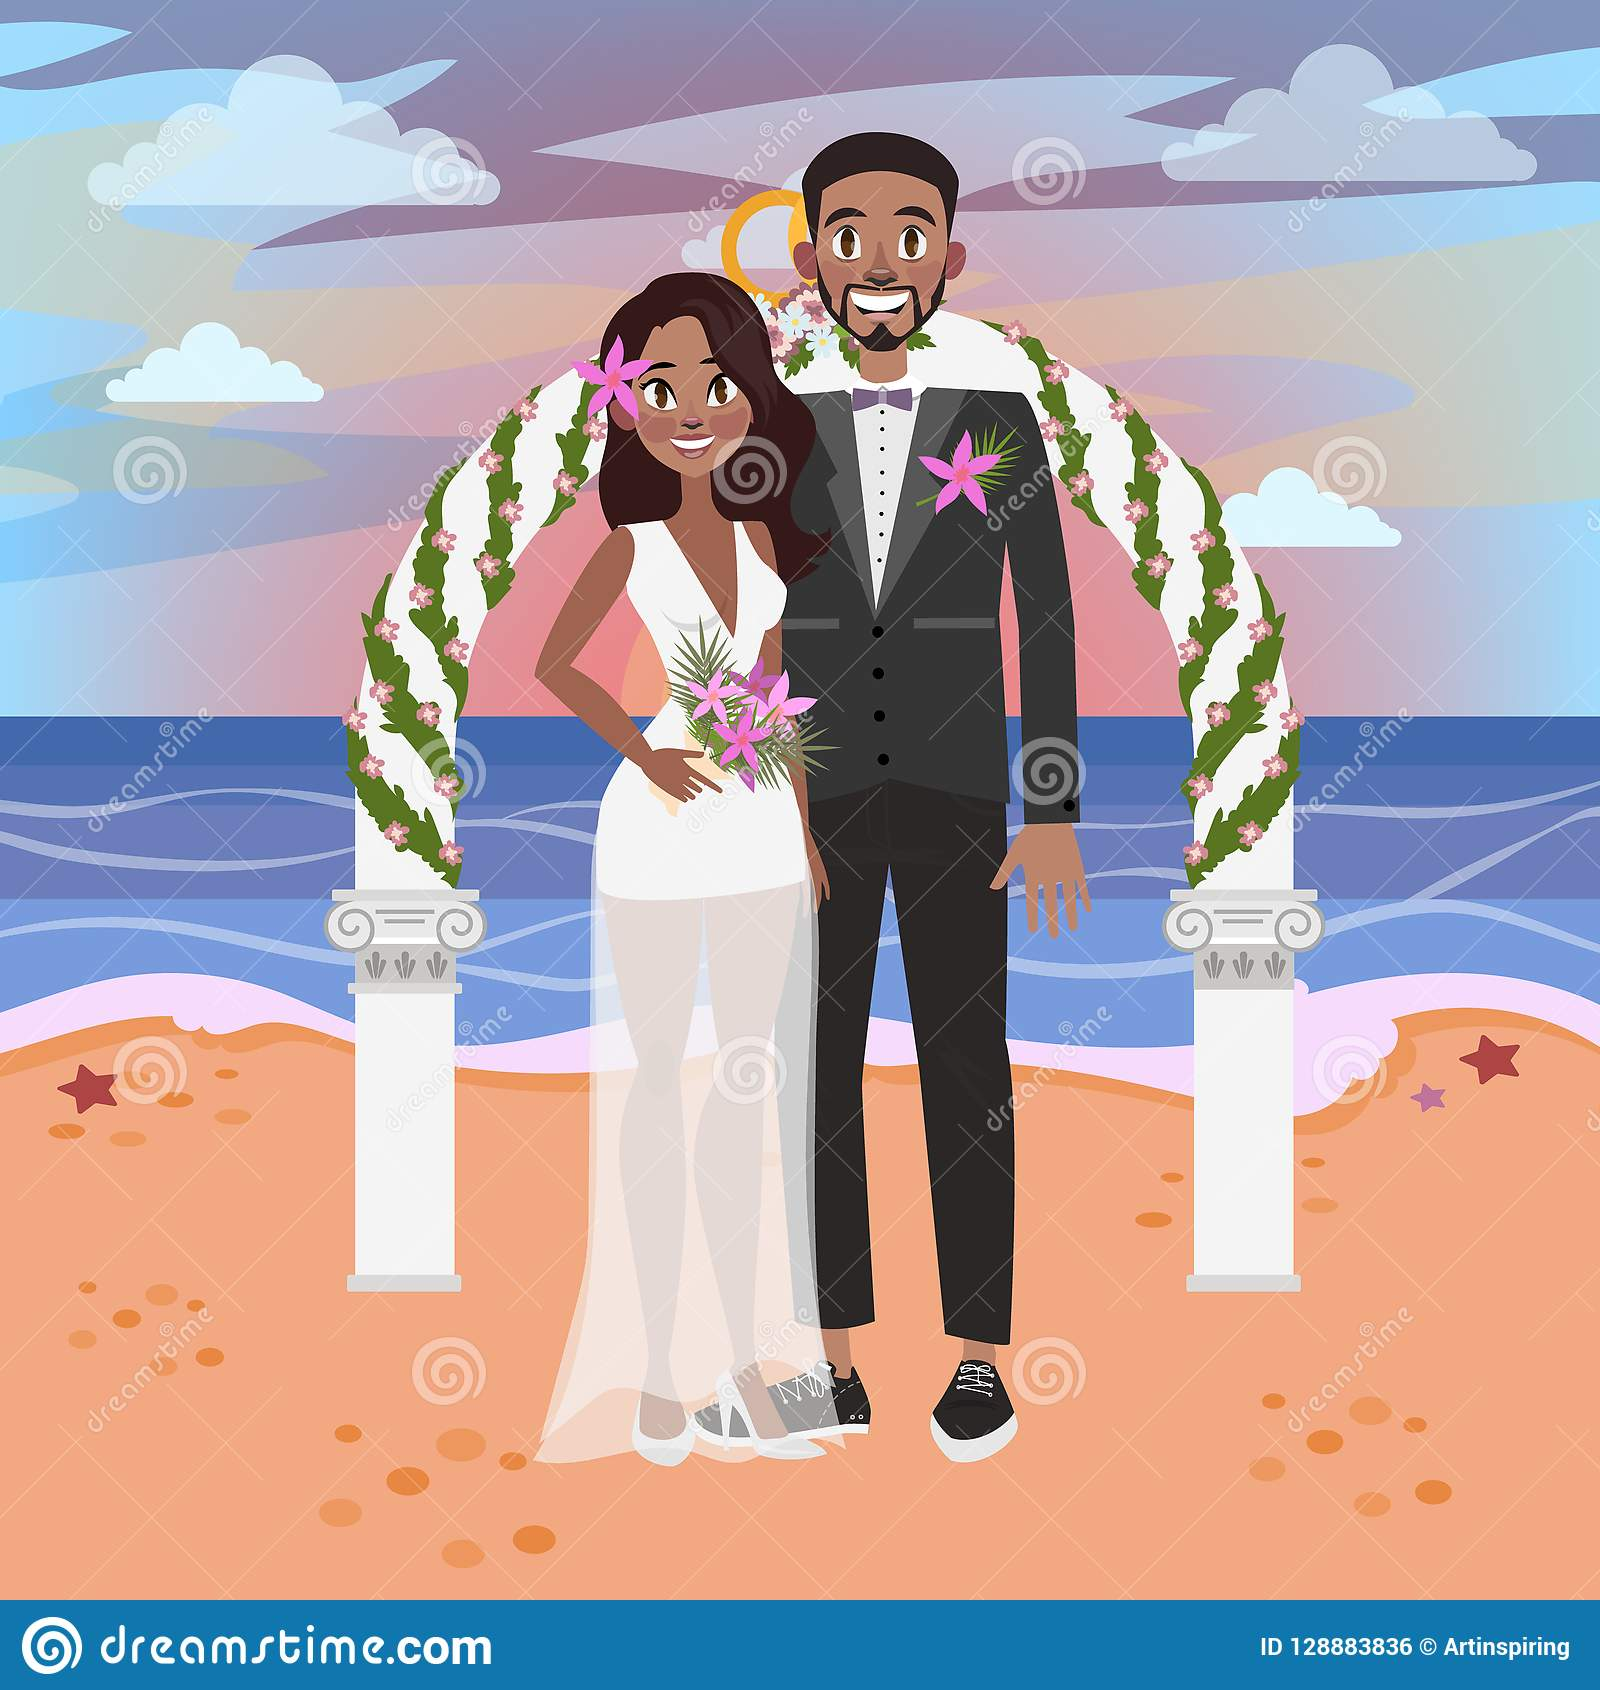 Bride And Groom Have A Wedding On The Beach. Stock Vector